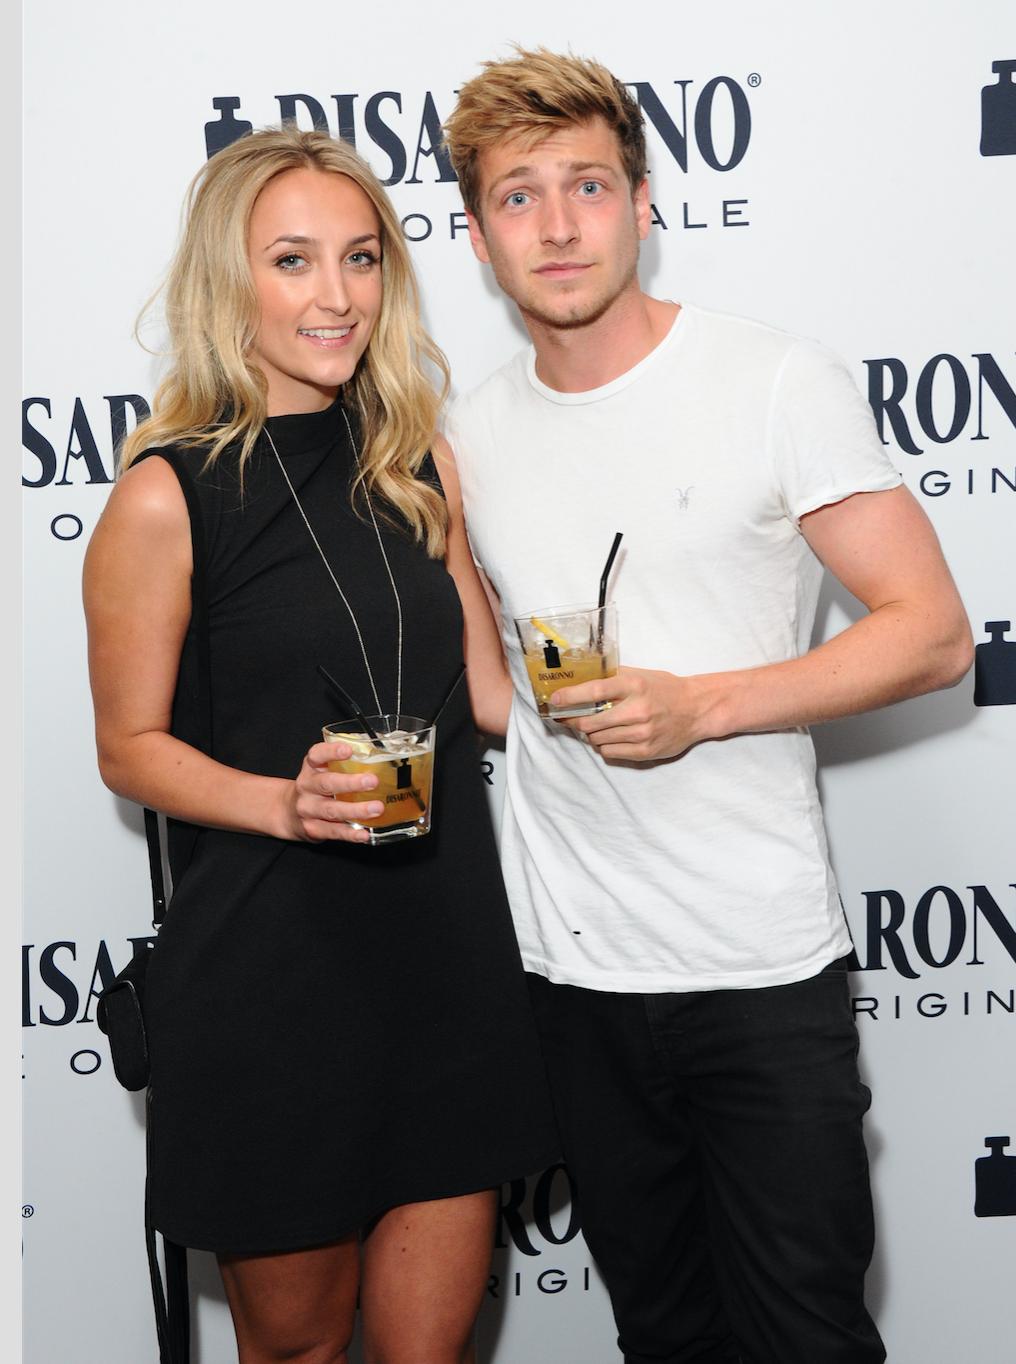 Are Ron And Sam Still Dating 2019